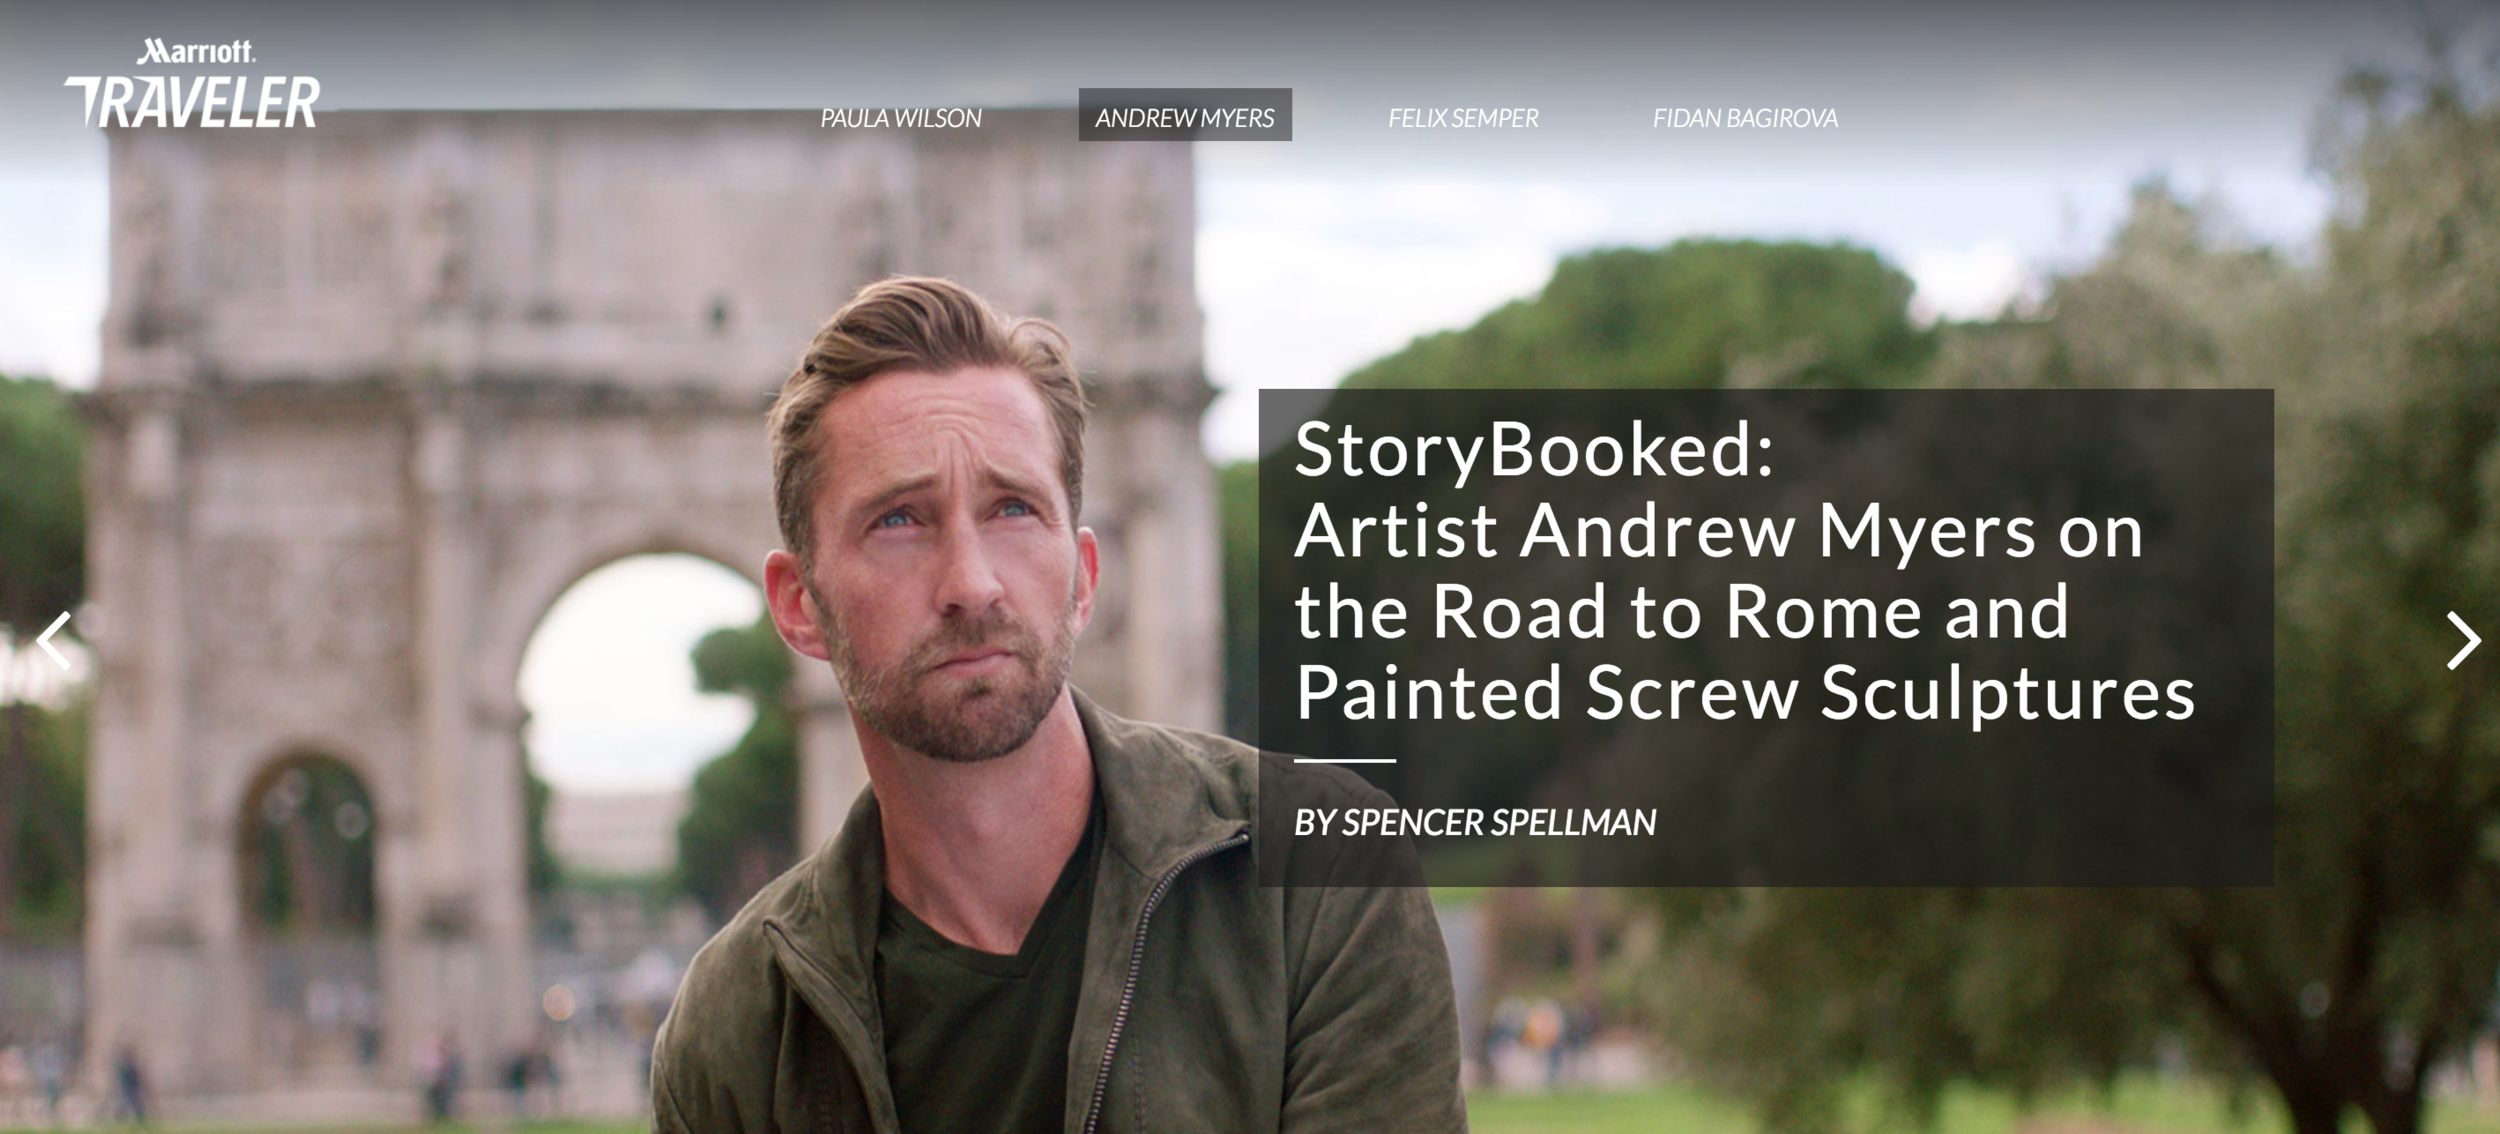 Marriott Traveler: StoryBooked with Artist Andrew Myers